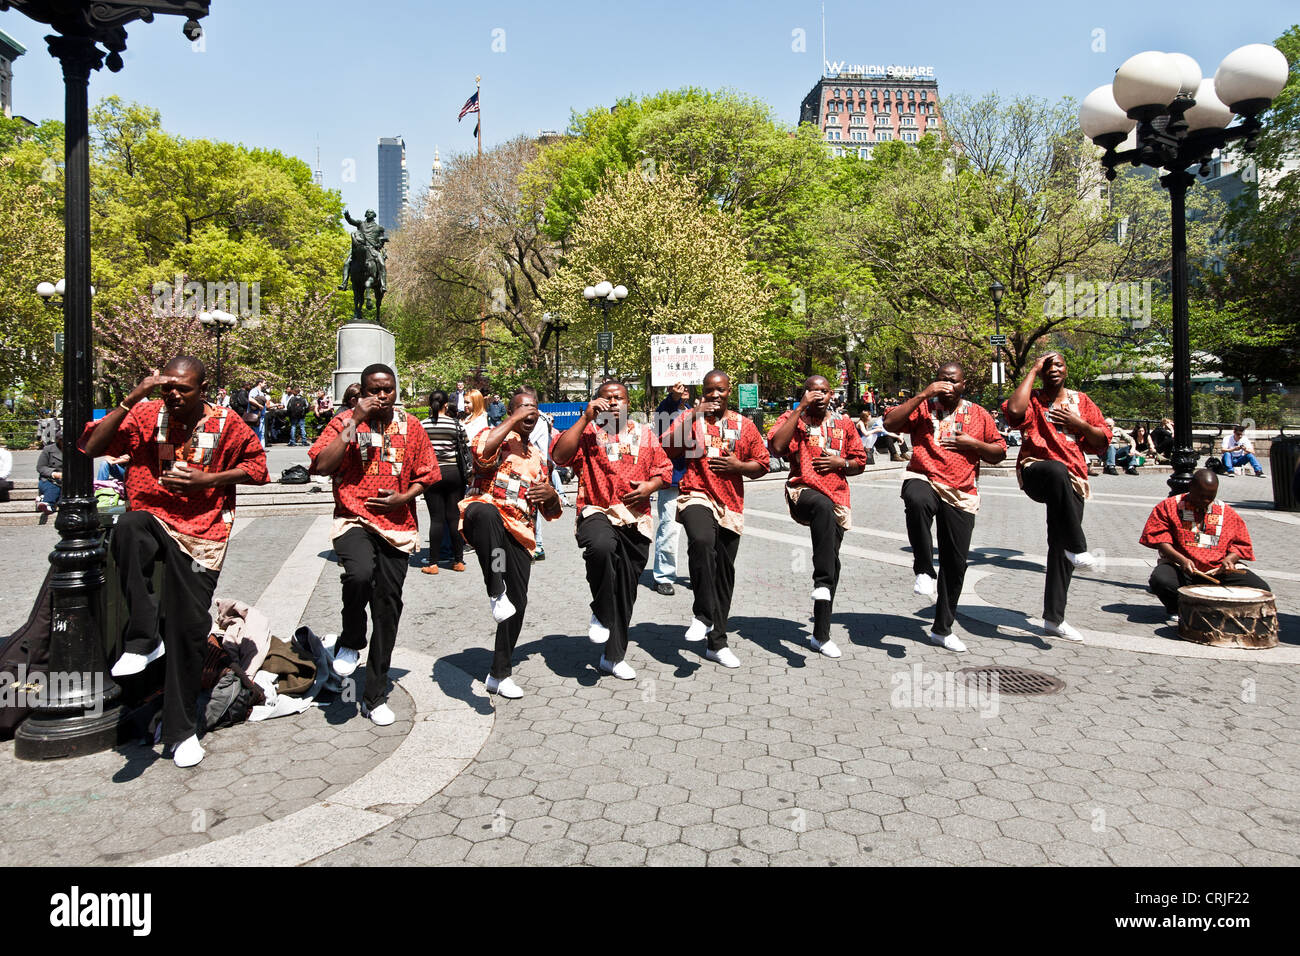 line of synchronized African dancers in colorful red shirts with drummer perform on a beautiful spring day in Union - Stock Image